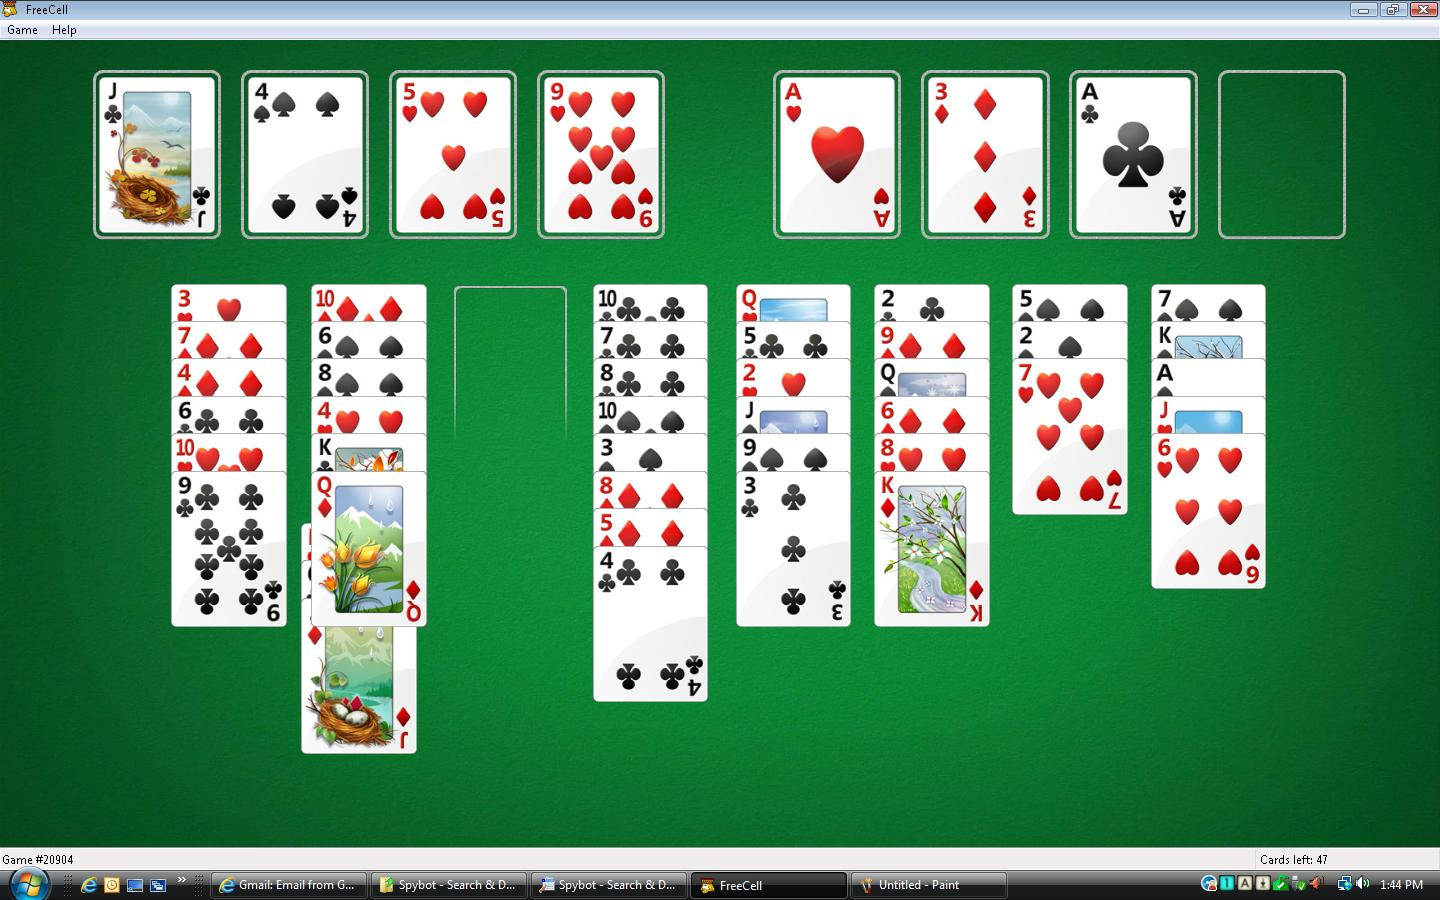 Freecell is not working correctly in Windows Vista 32-bit ...